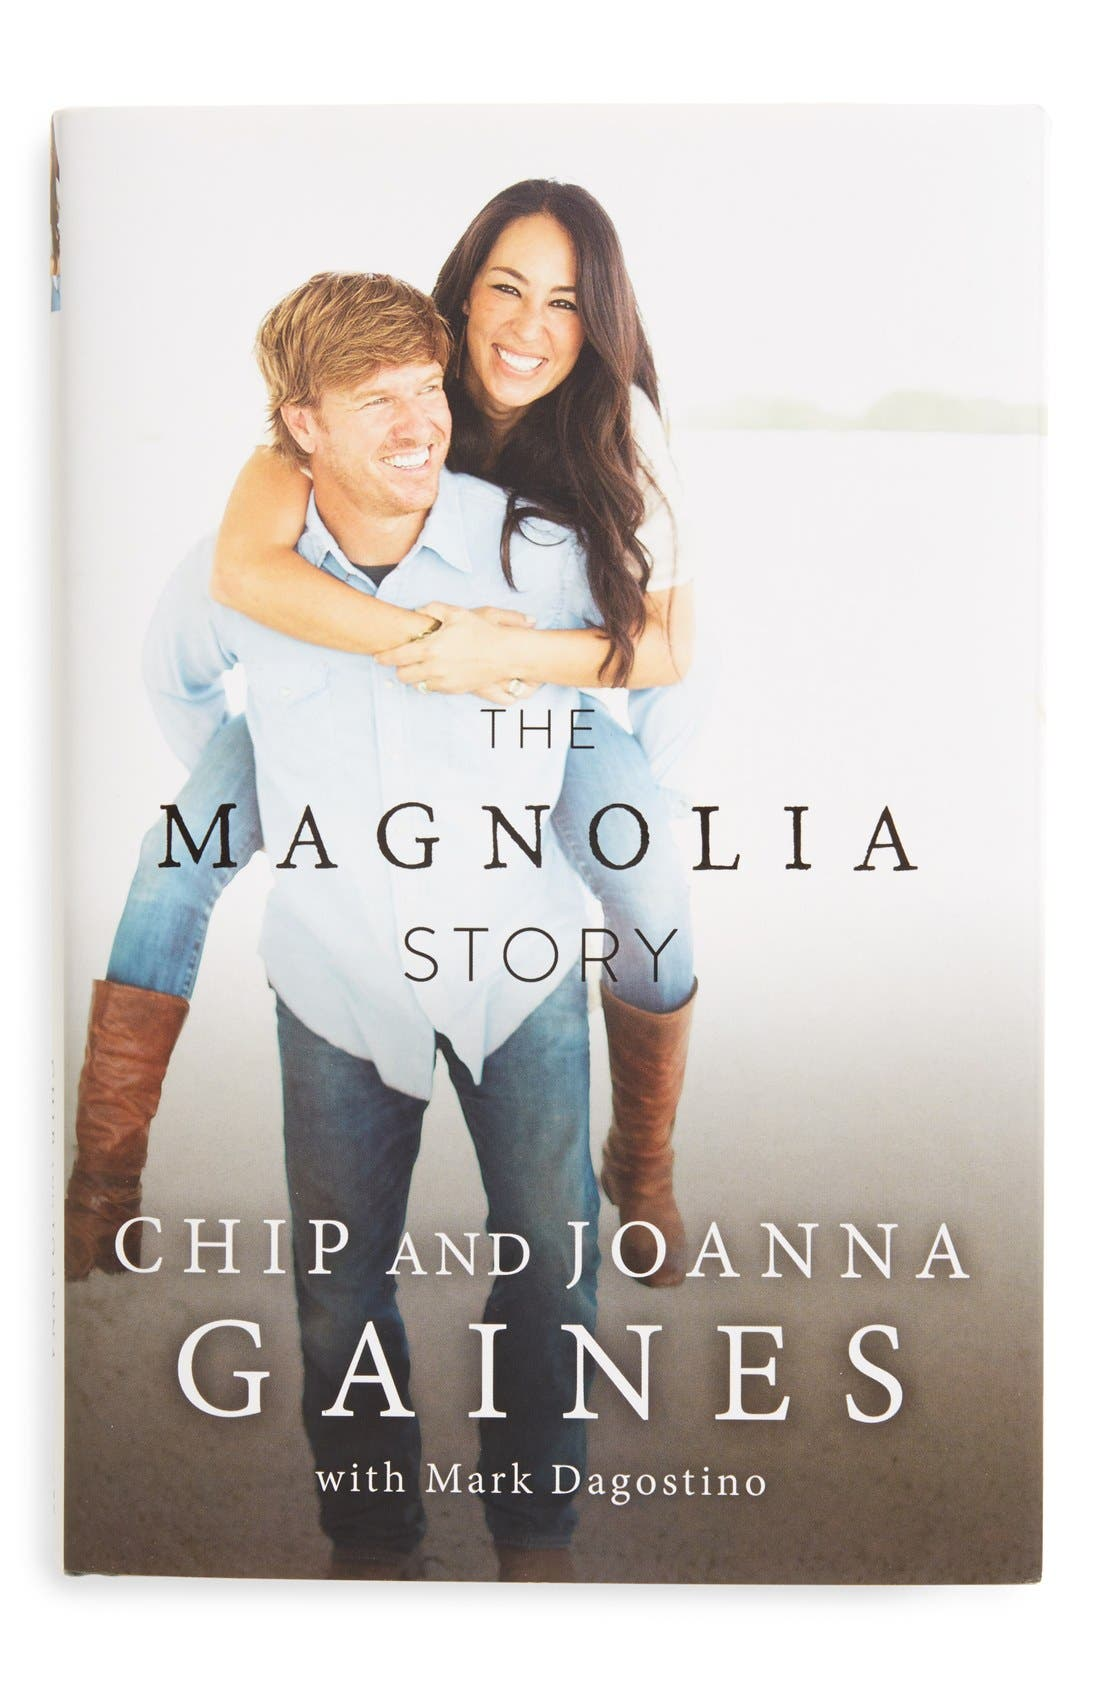 Chip & Joanna Gaines - The Magnolia Story Hardcover Book